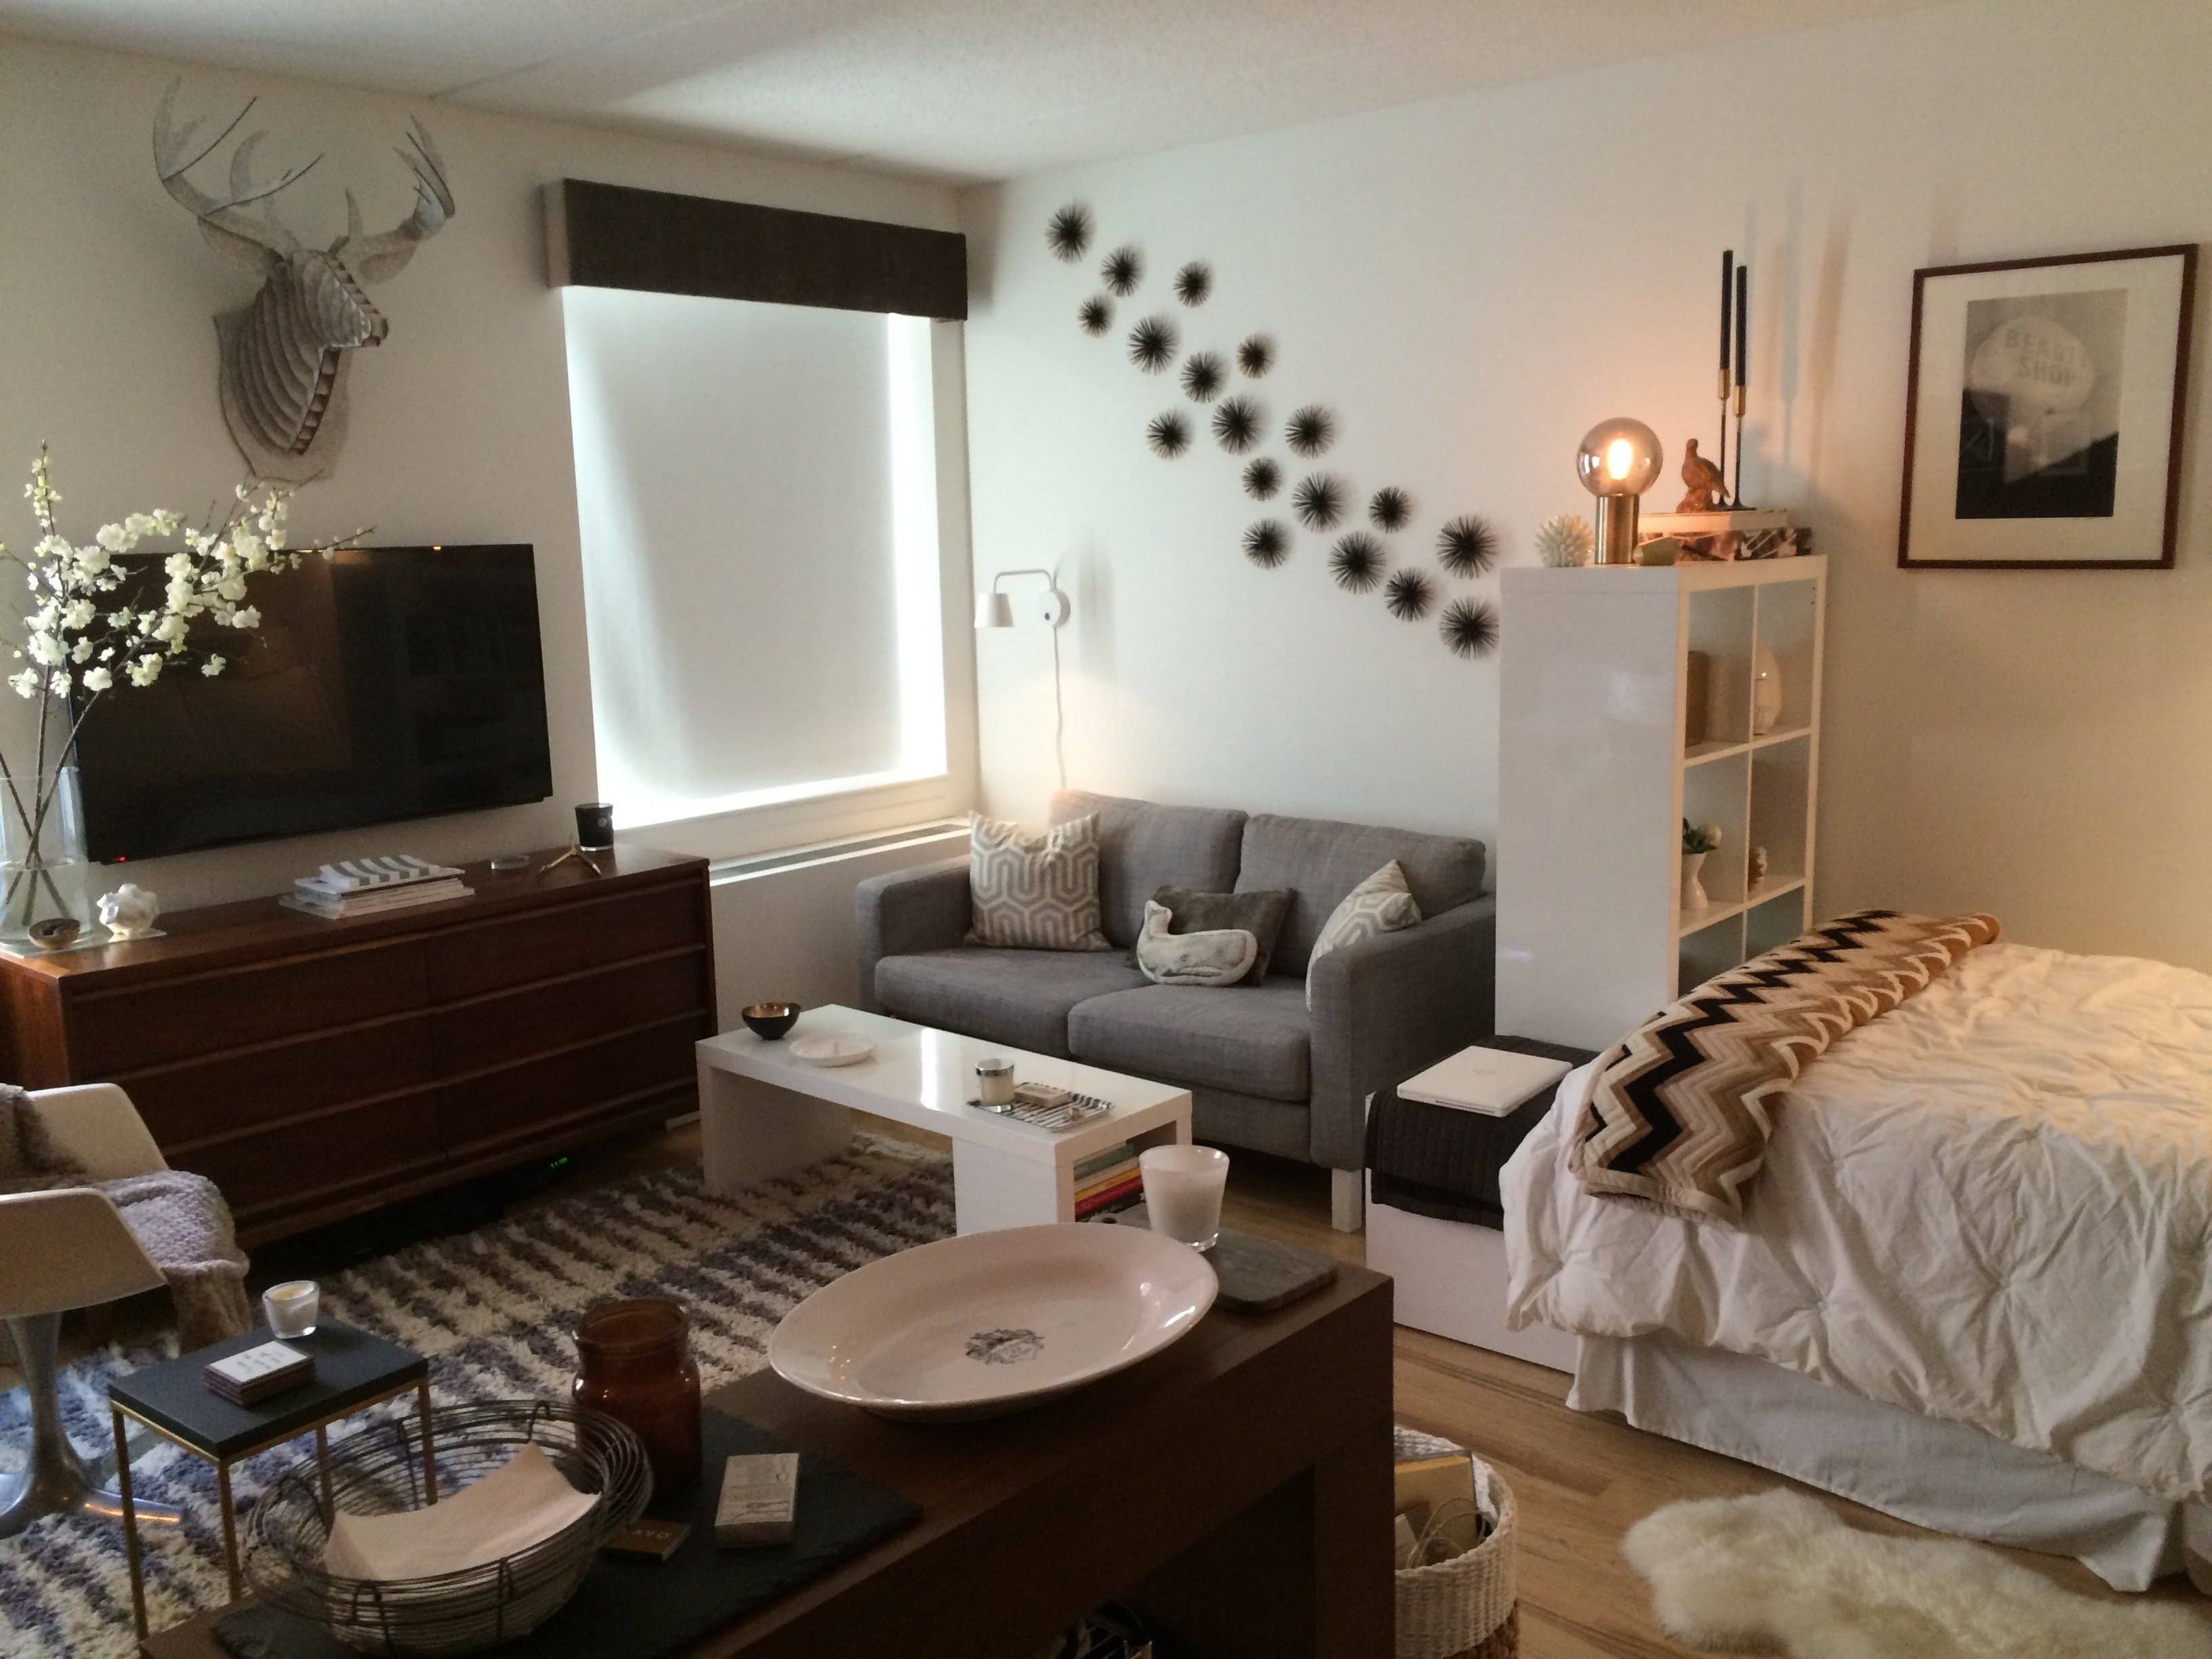 furniture for studio apartment. 5 studio apartment layouts that work furniture for e